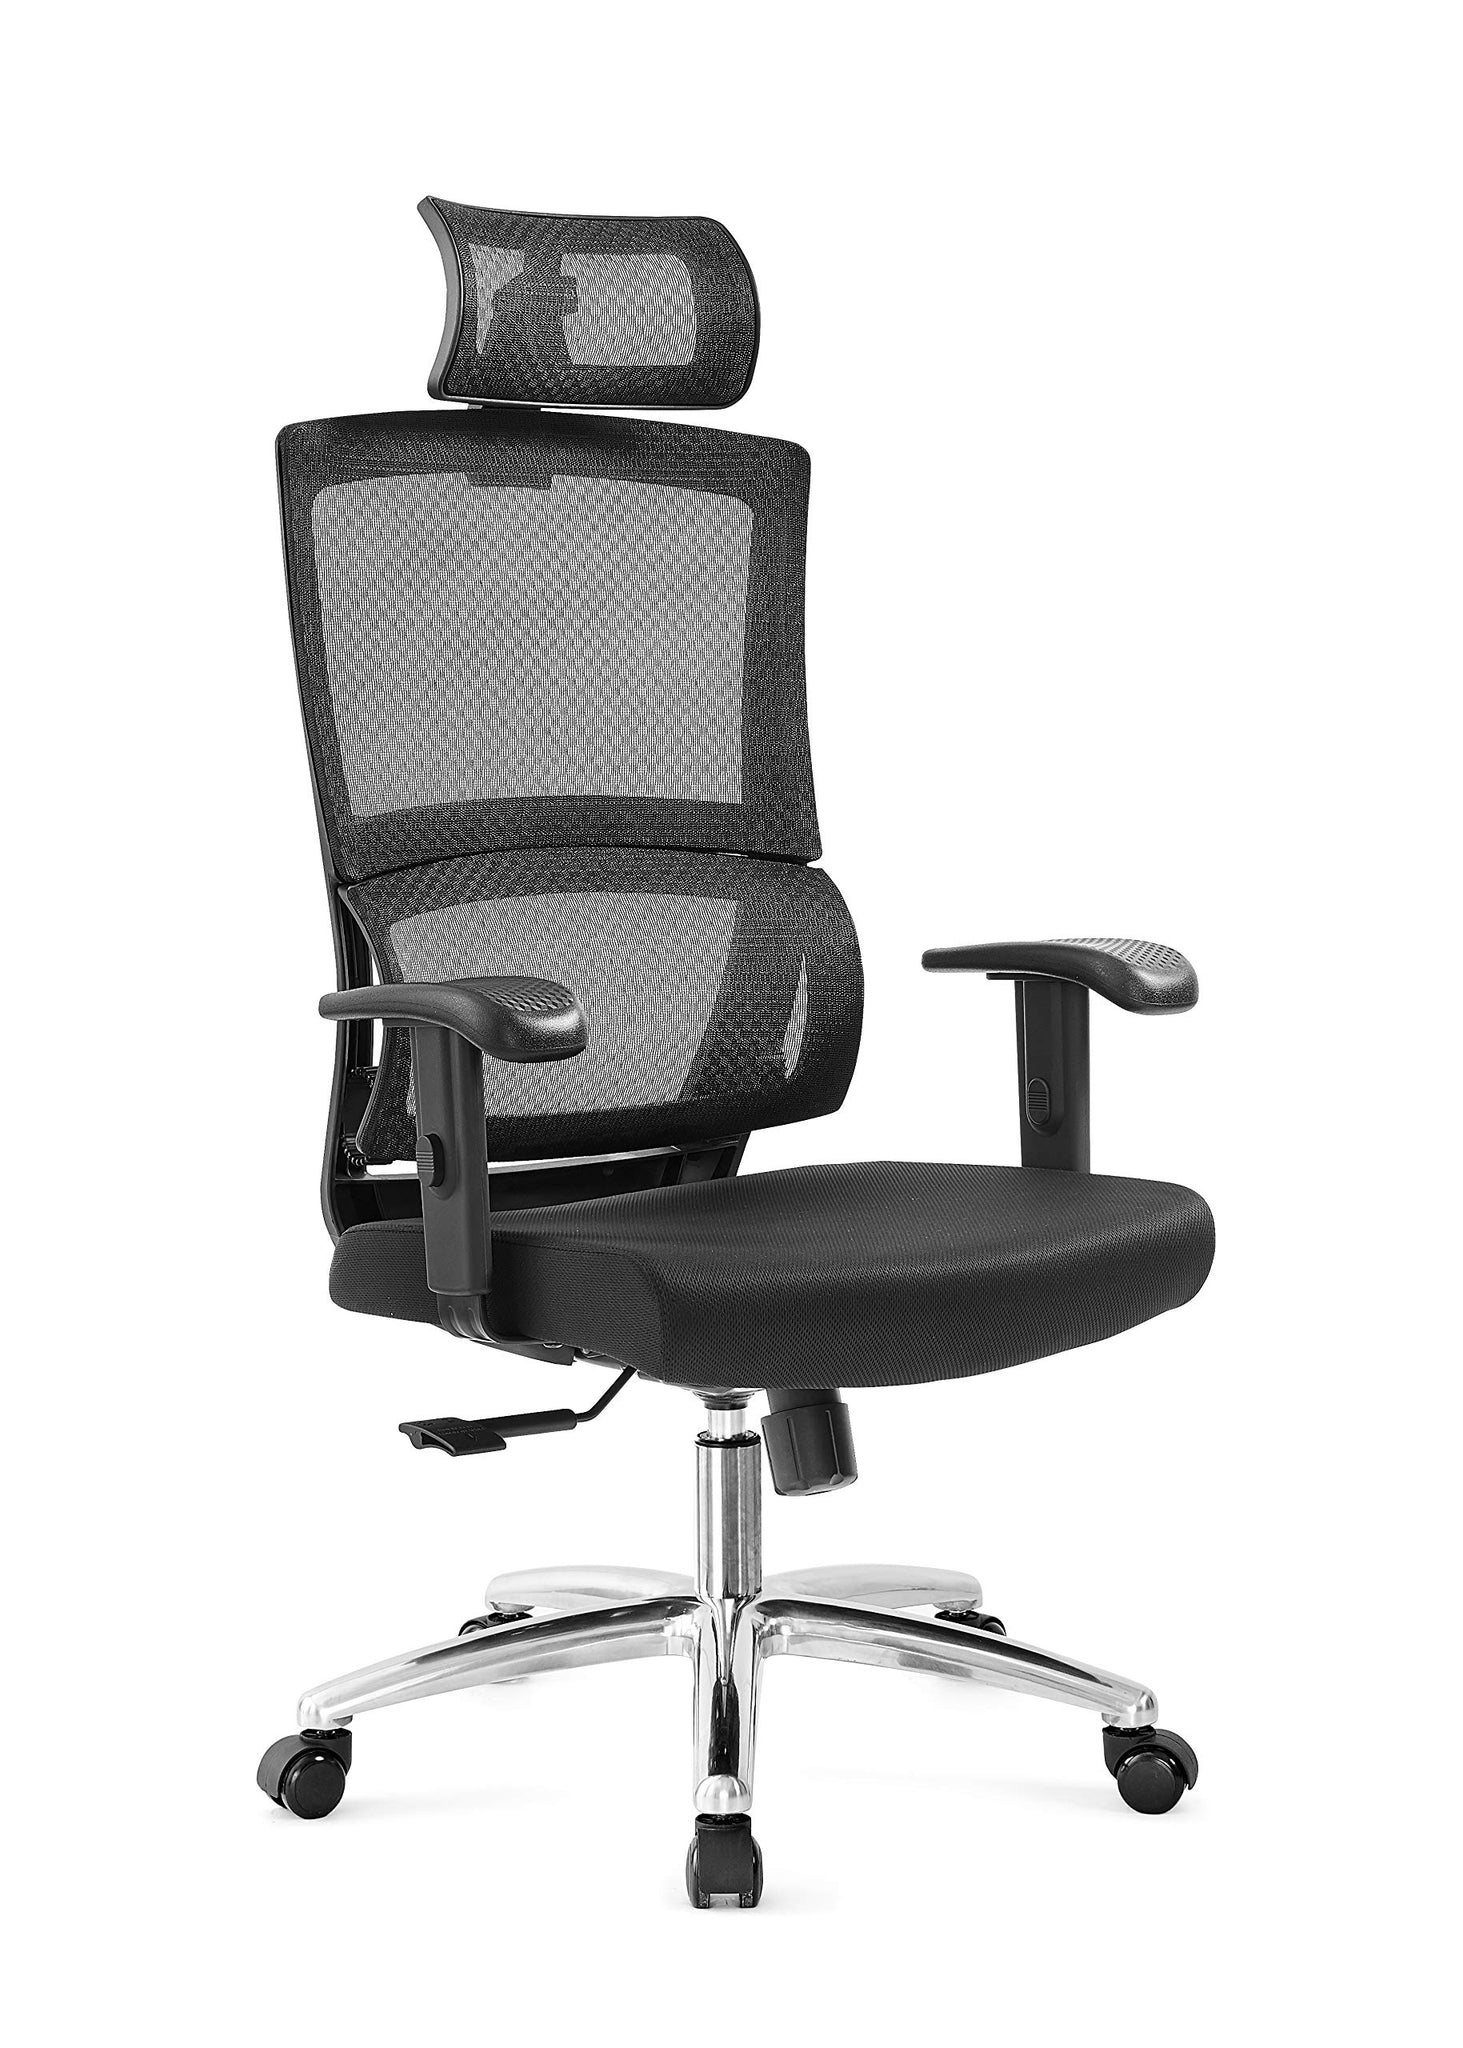 Groovy Ticova Ergonomic Office Chair High Back Mesh Chair With Dailytribune Chair Design For Home Dailytribuneorg